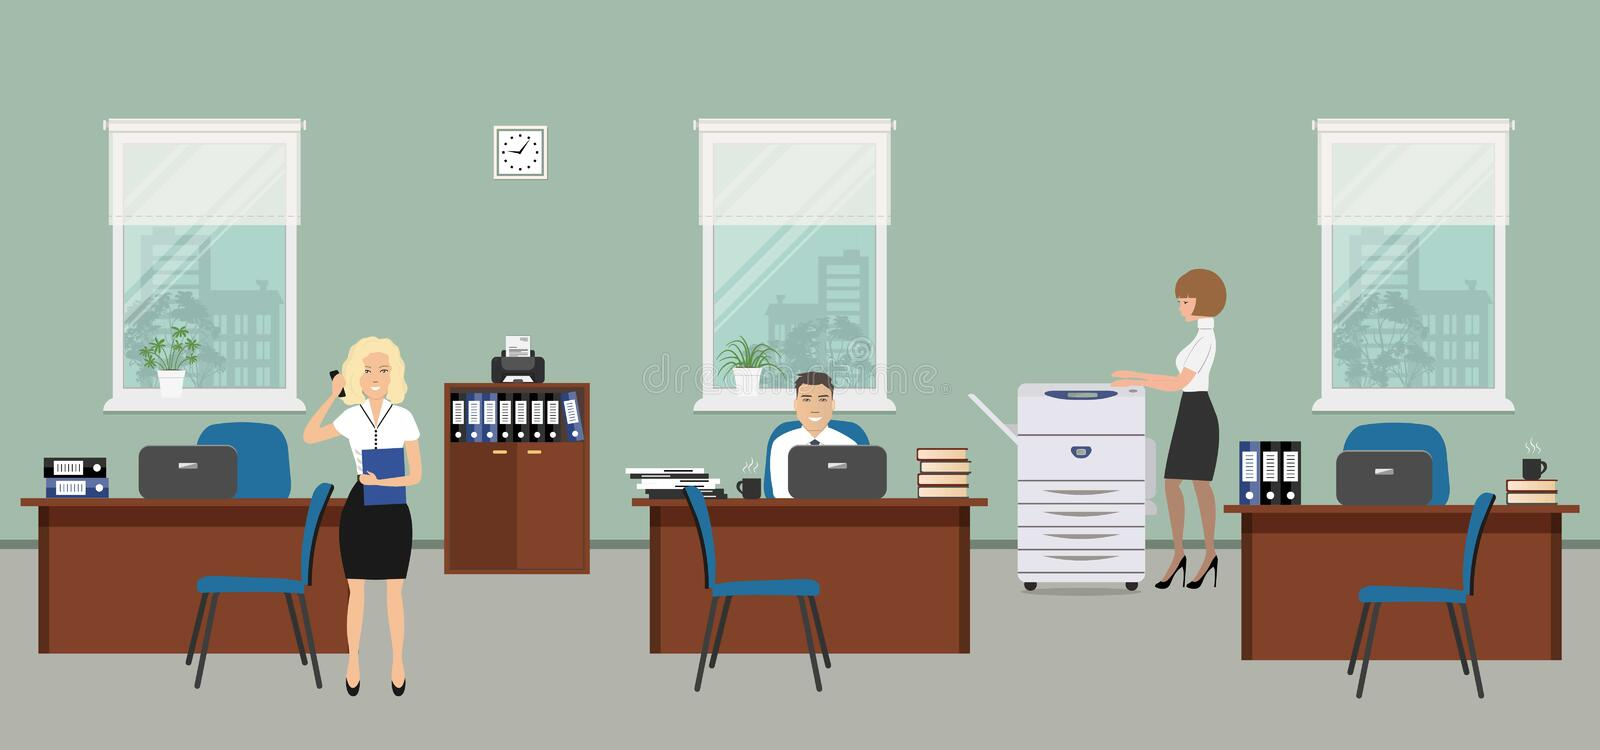 Office room in a gray color. The young women and man are employees at work. There is brown furniture, blue chairs, a copy machine on a window background in the royalty free illustration